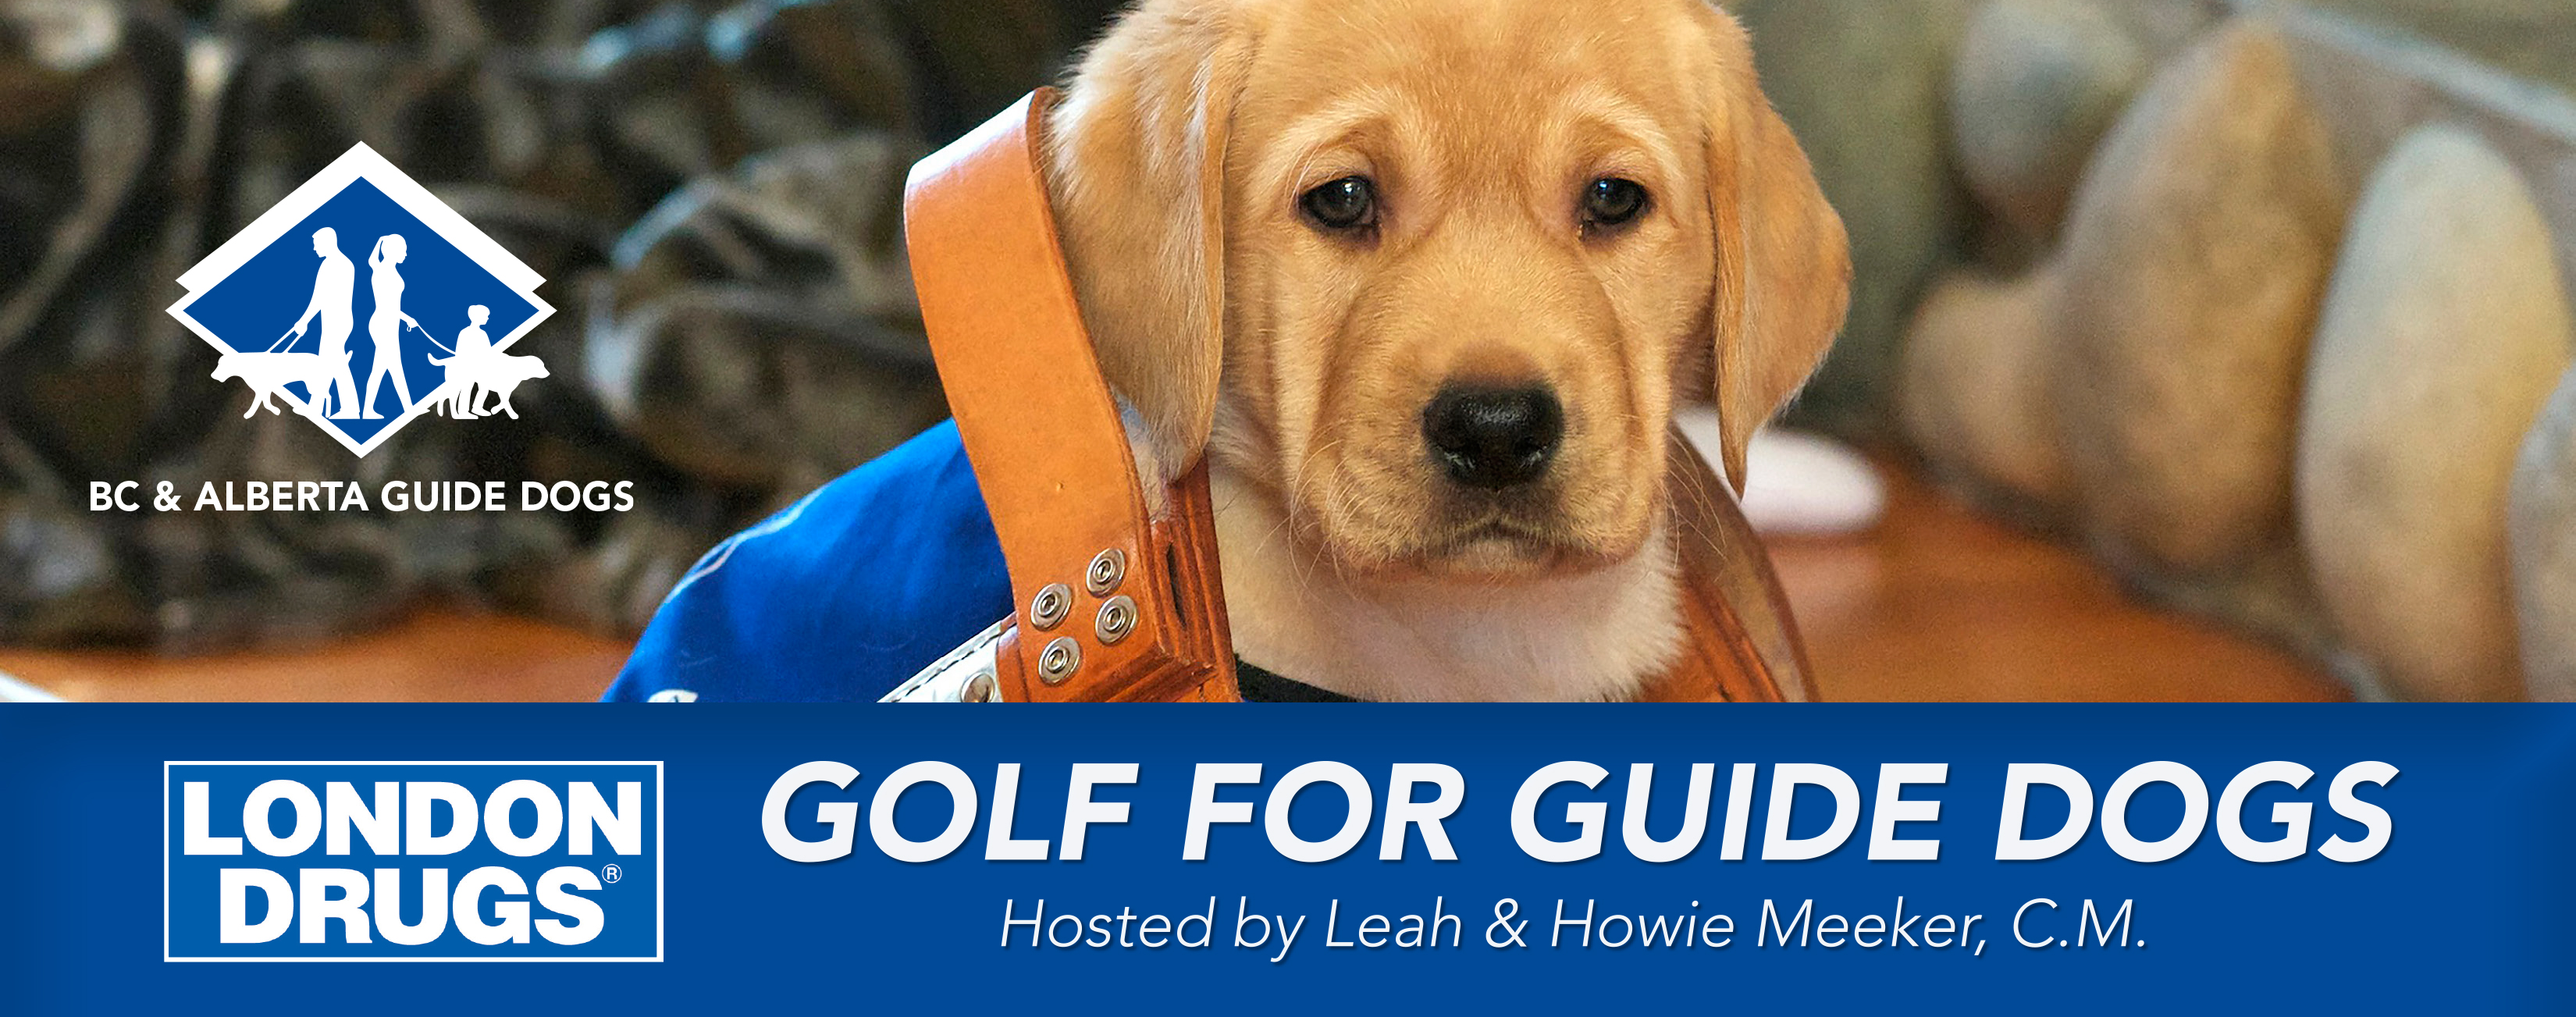 London Drugs 19th Annual Golf For Guide Dogs